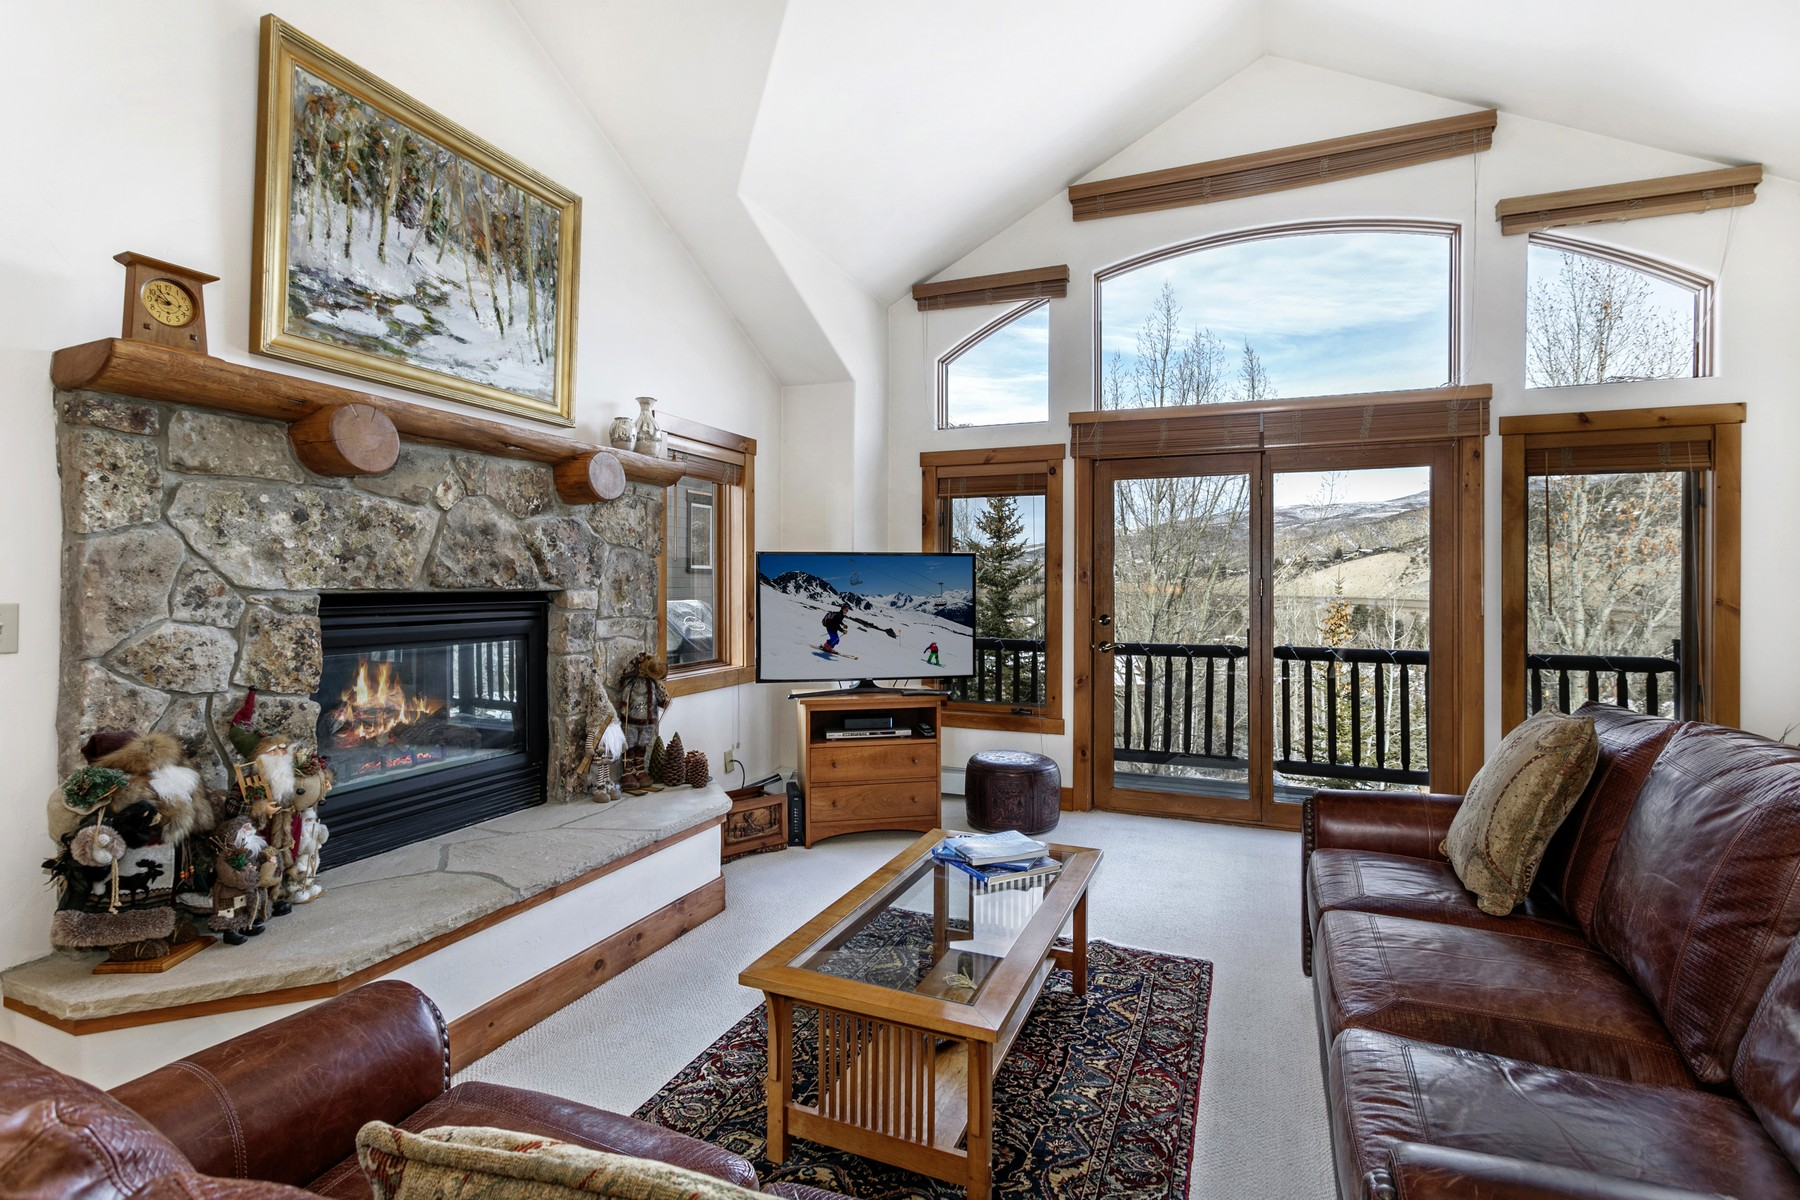 Property for Active at Beautifully finished convenient location duplex in a quaint gated enclave 113 Knudson Ranch Road Edwards, Colorado 81632 United States